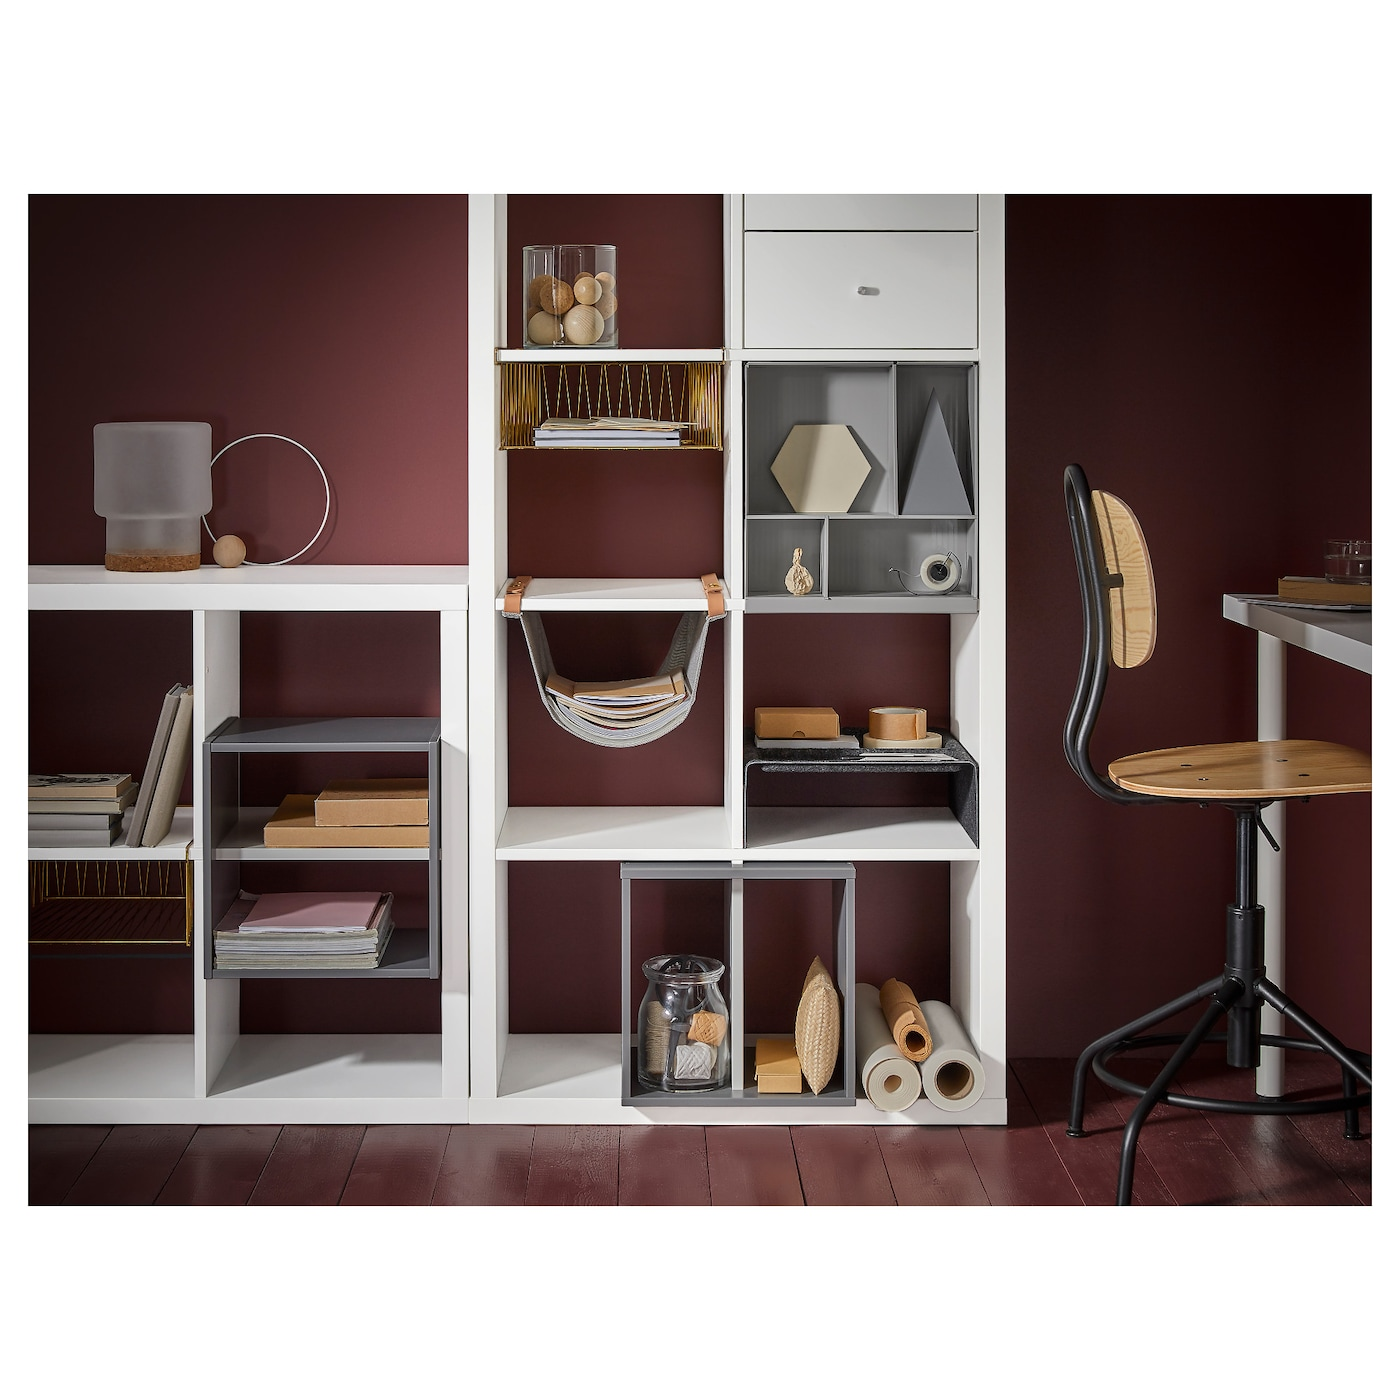 IKEA KALLAX Storage With Compartments Compartments Make It Easy To Organise  Pens, Cutlery, Etc